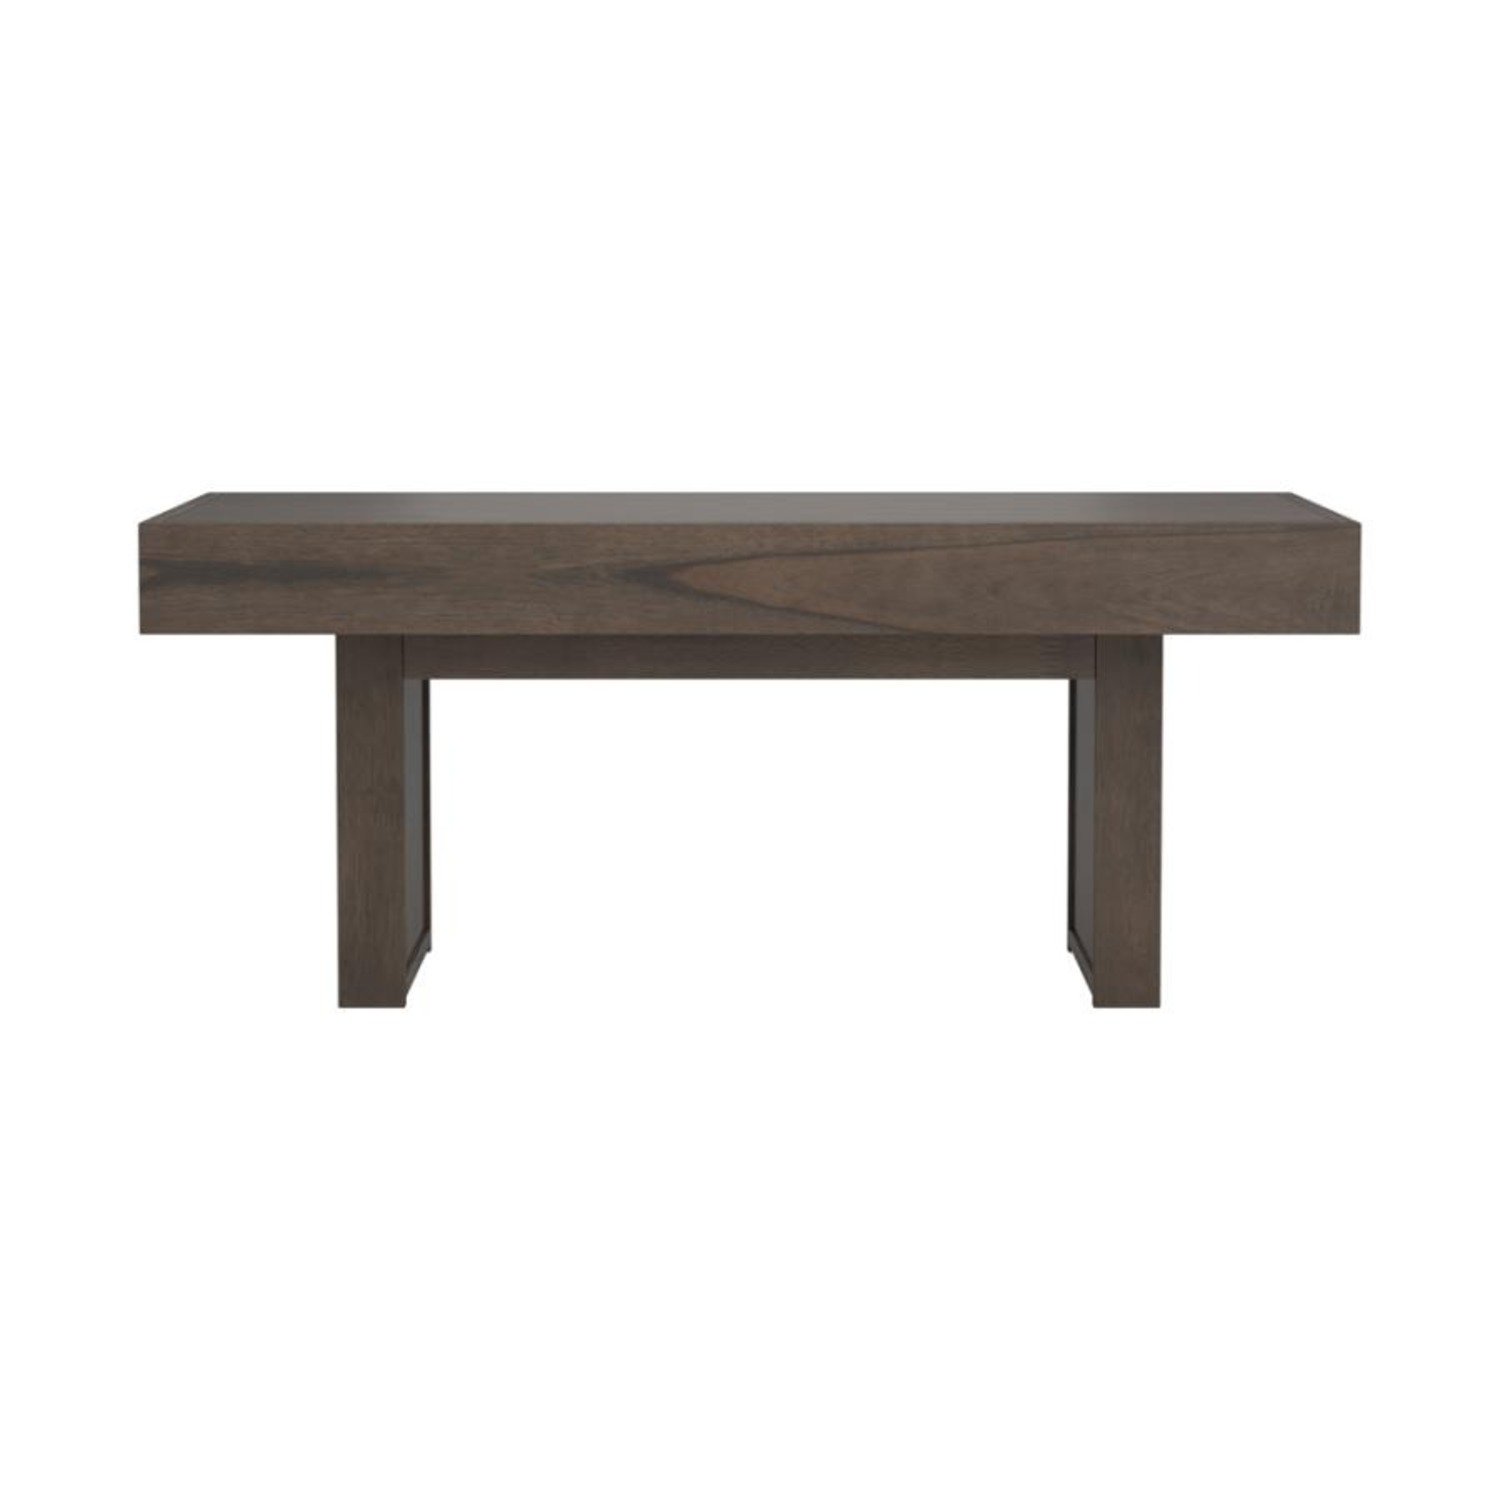 Coffee Table In Wheat Brown Finish - image-1